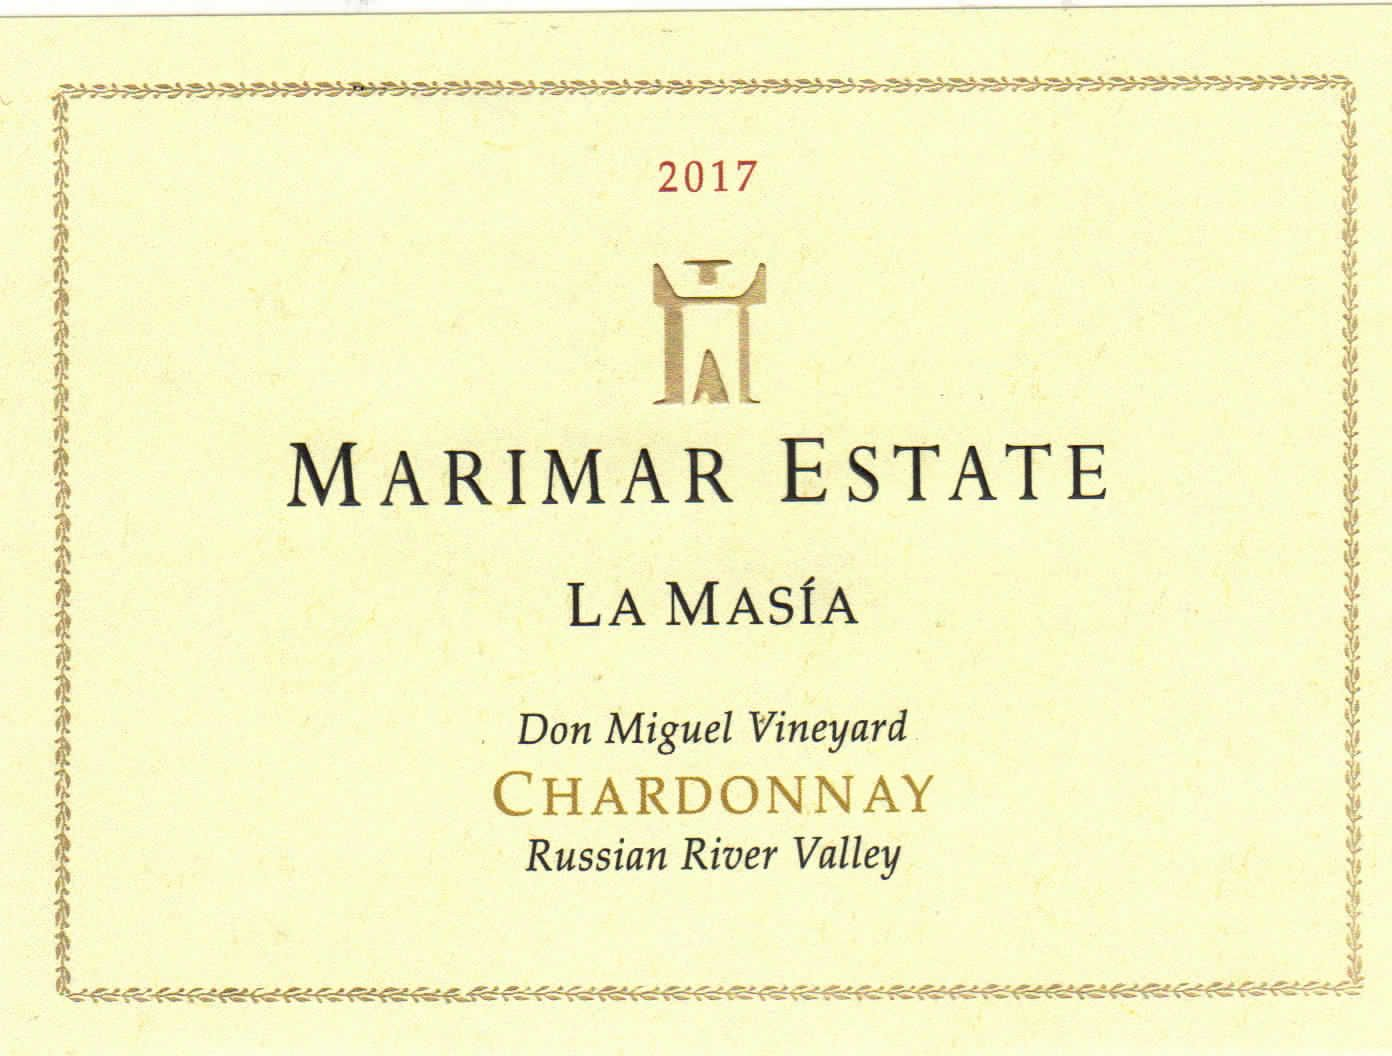 Marimar Estate Don Miguel Vineyard La Masia Chardonnay 2017  Front Label